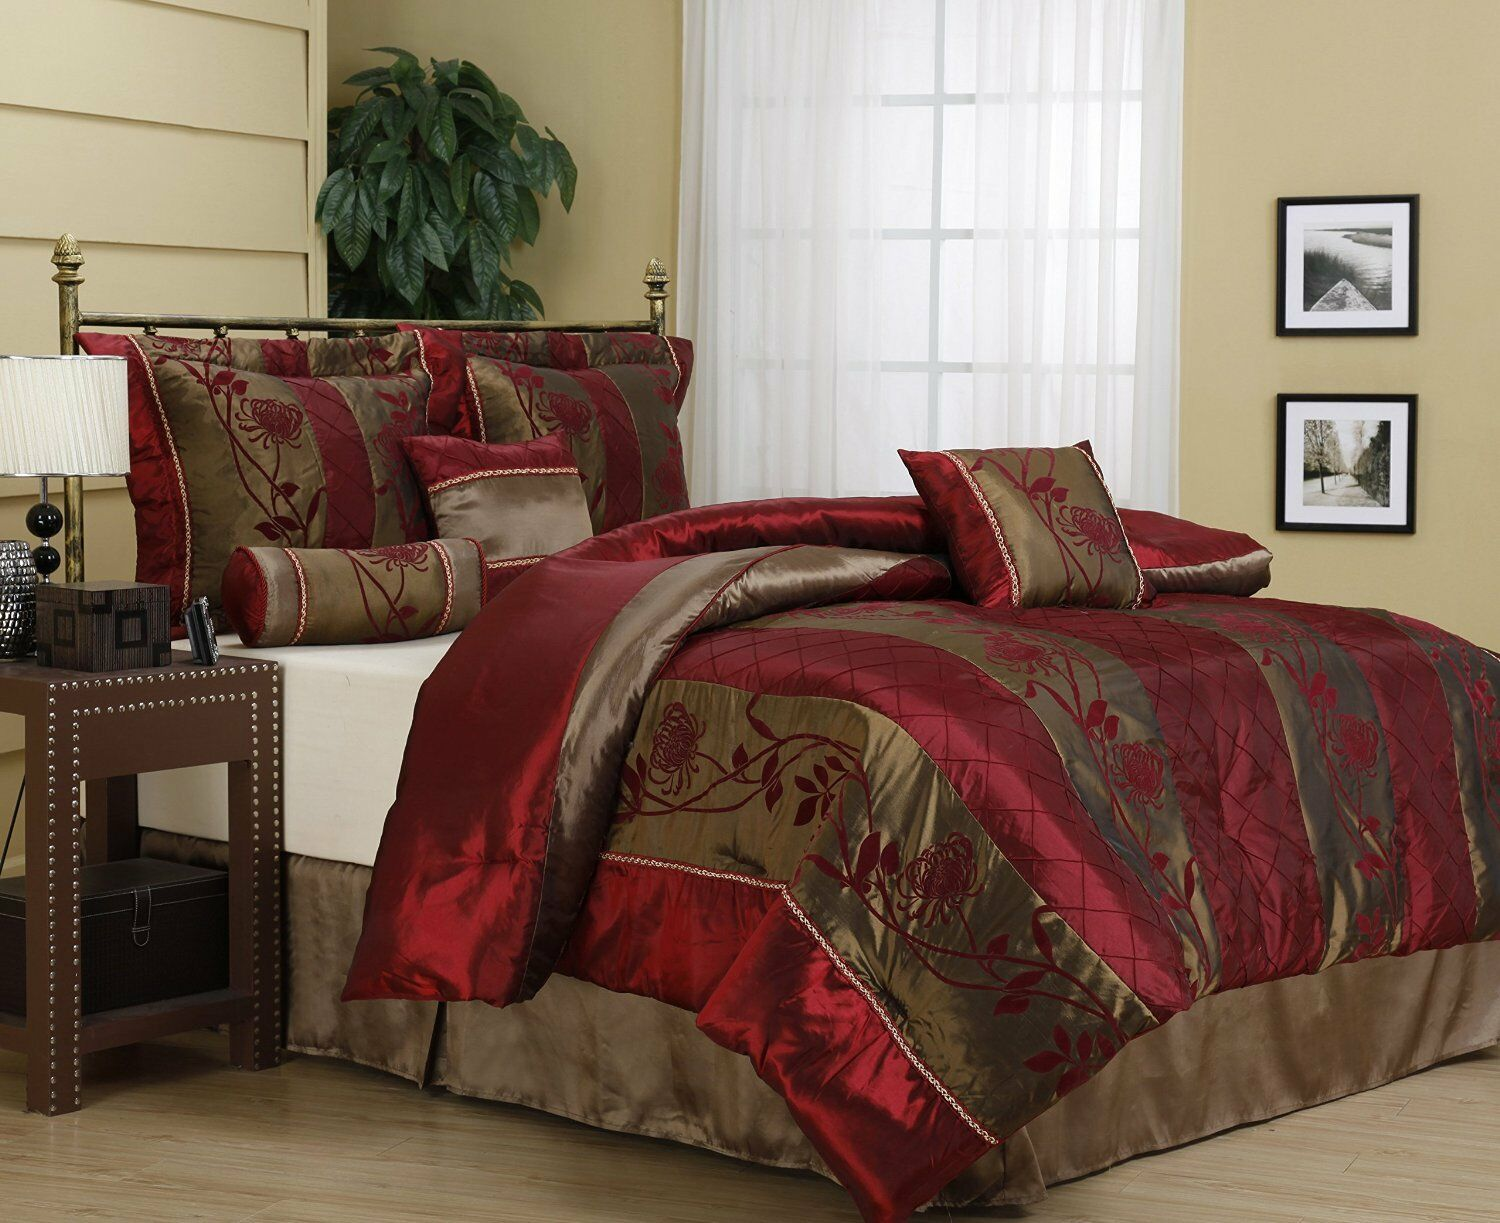 Luxurious 7 Piece Embroidered Floral Red & gold Comforter Set, W pink Motif New.